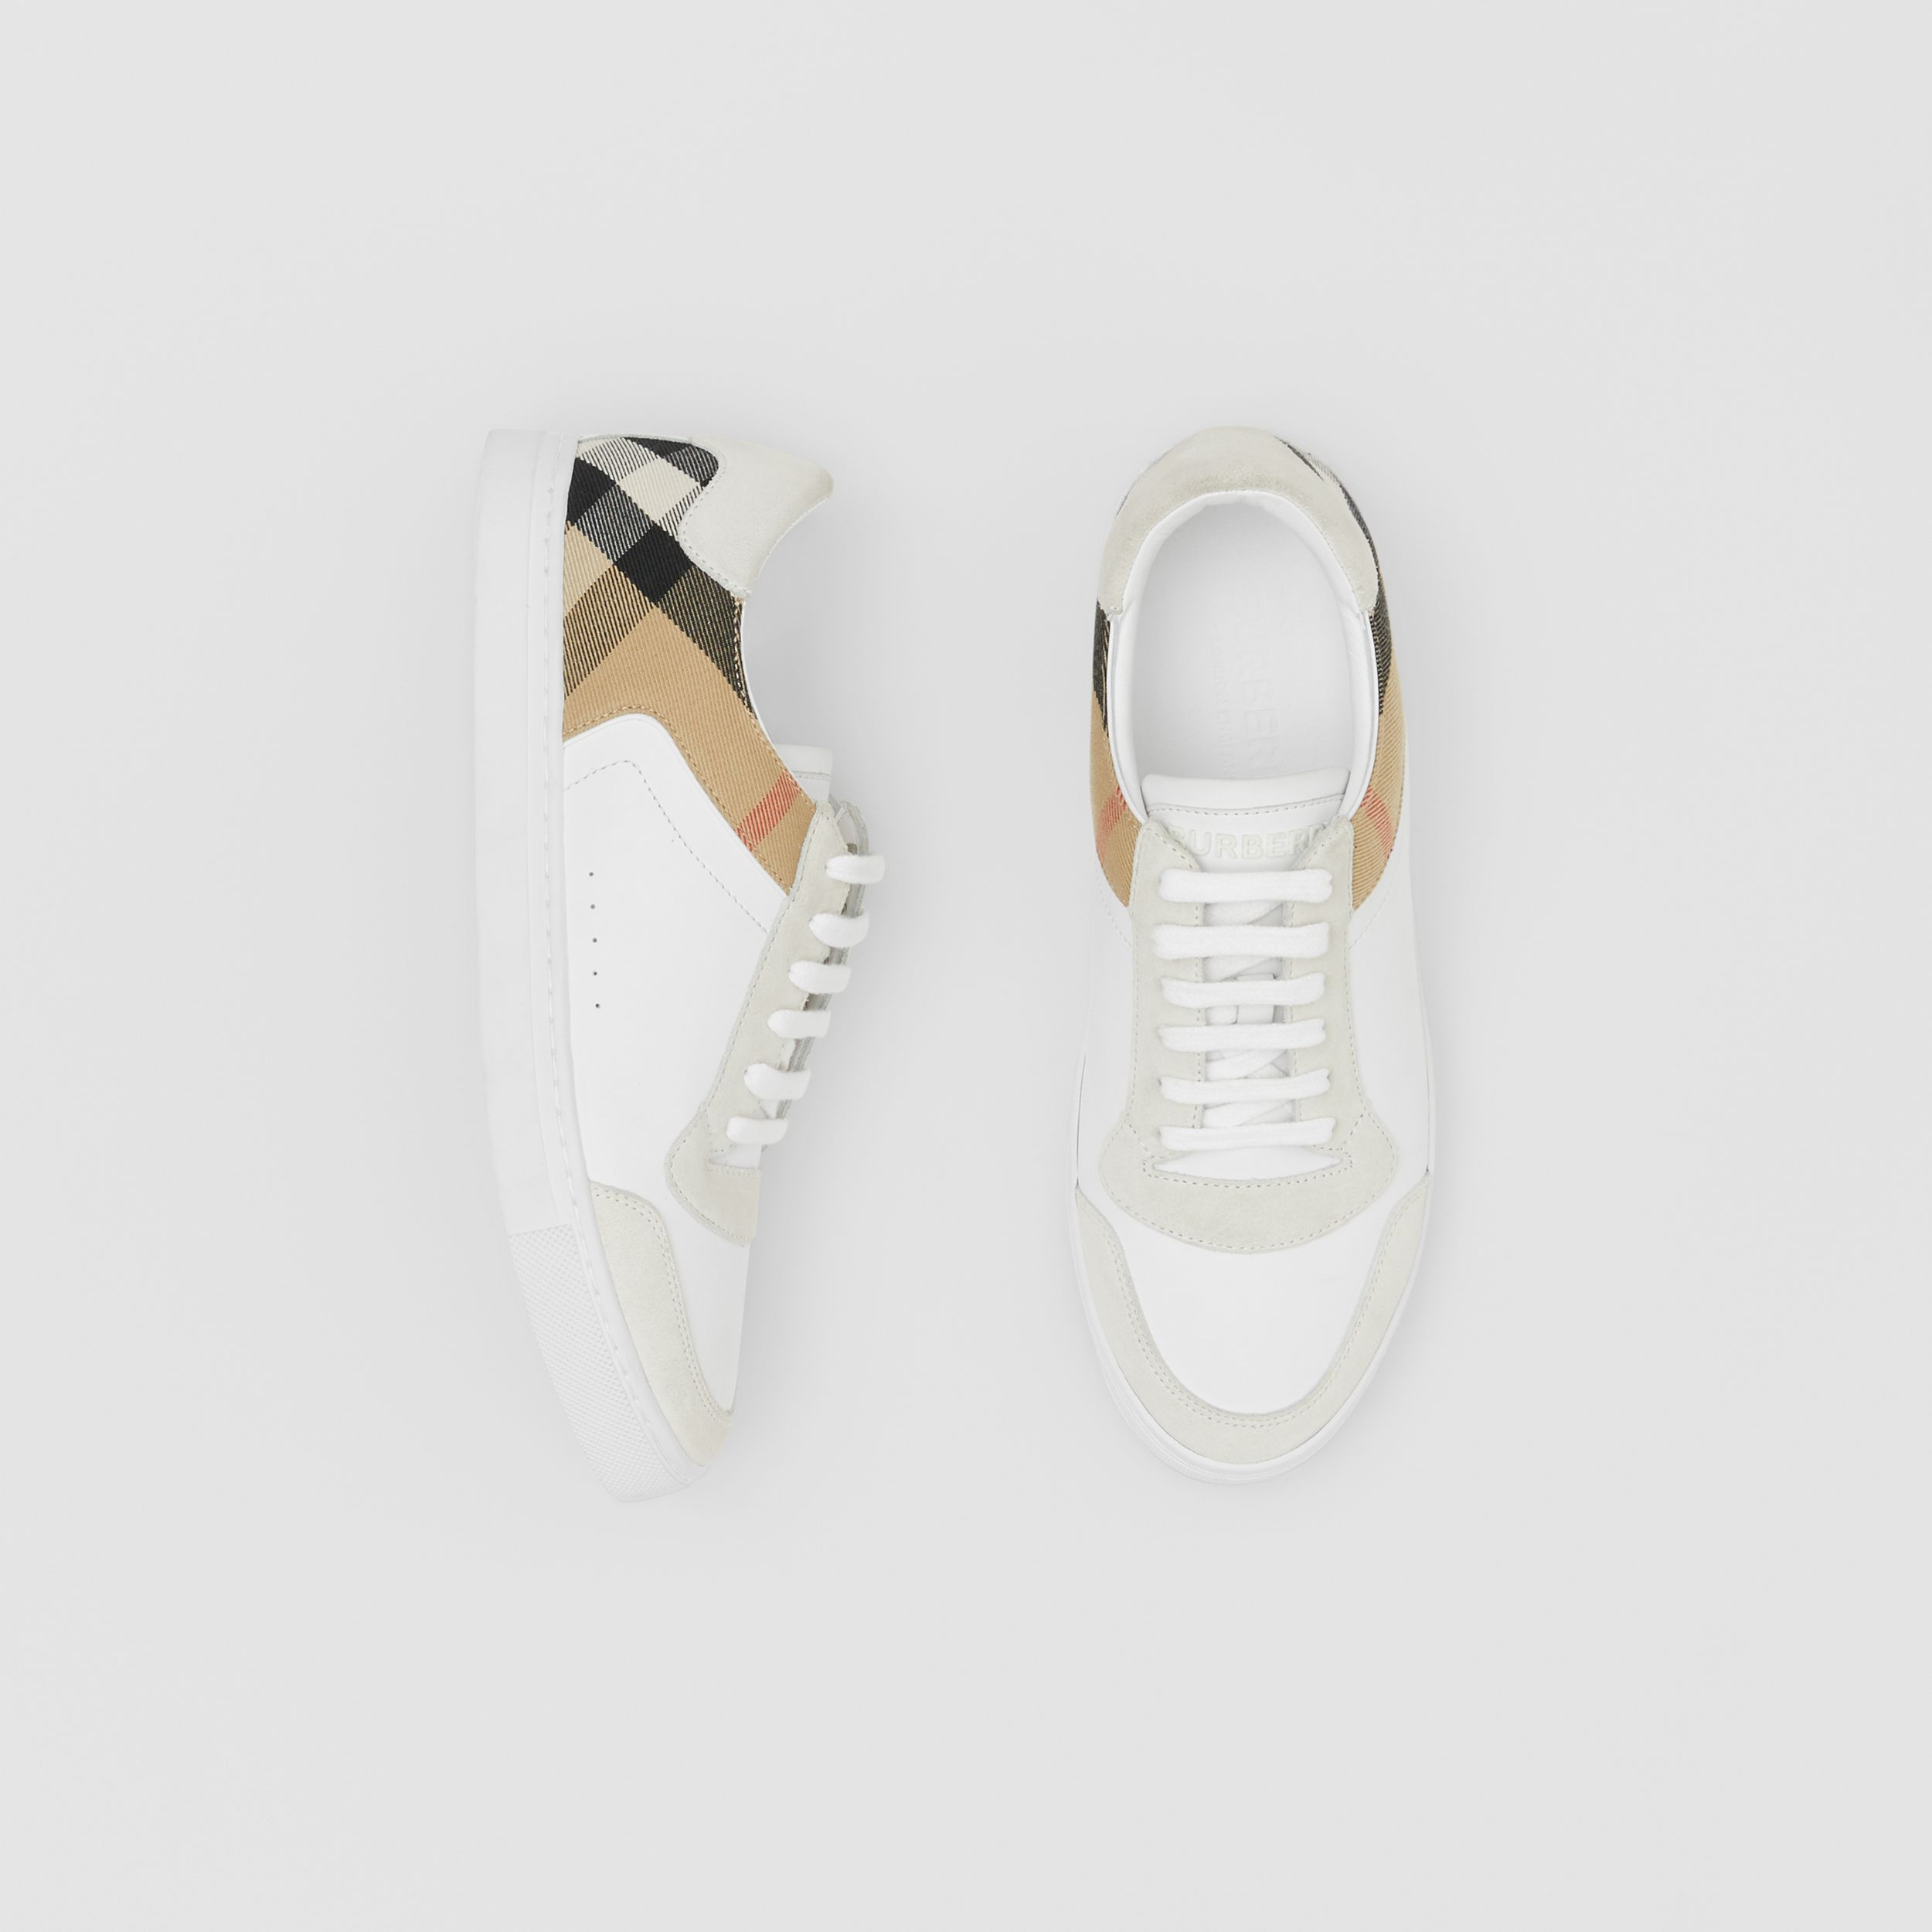 Leather, Suede and House Check Sneakers in Optic White - Men | Burberry - 1